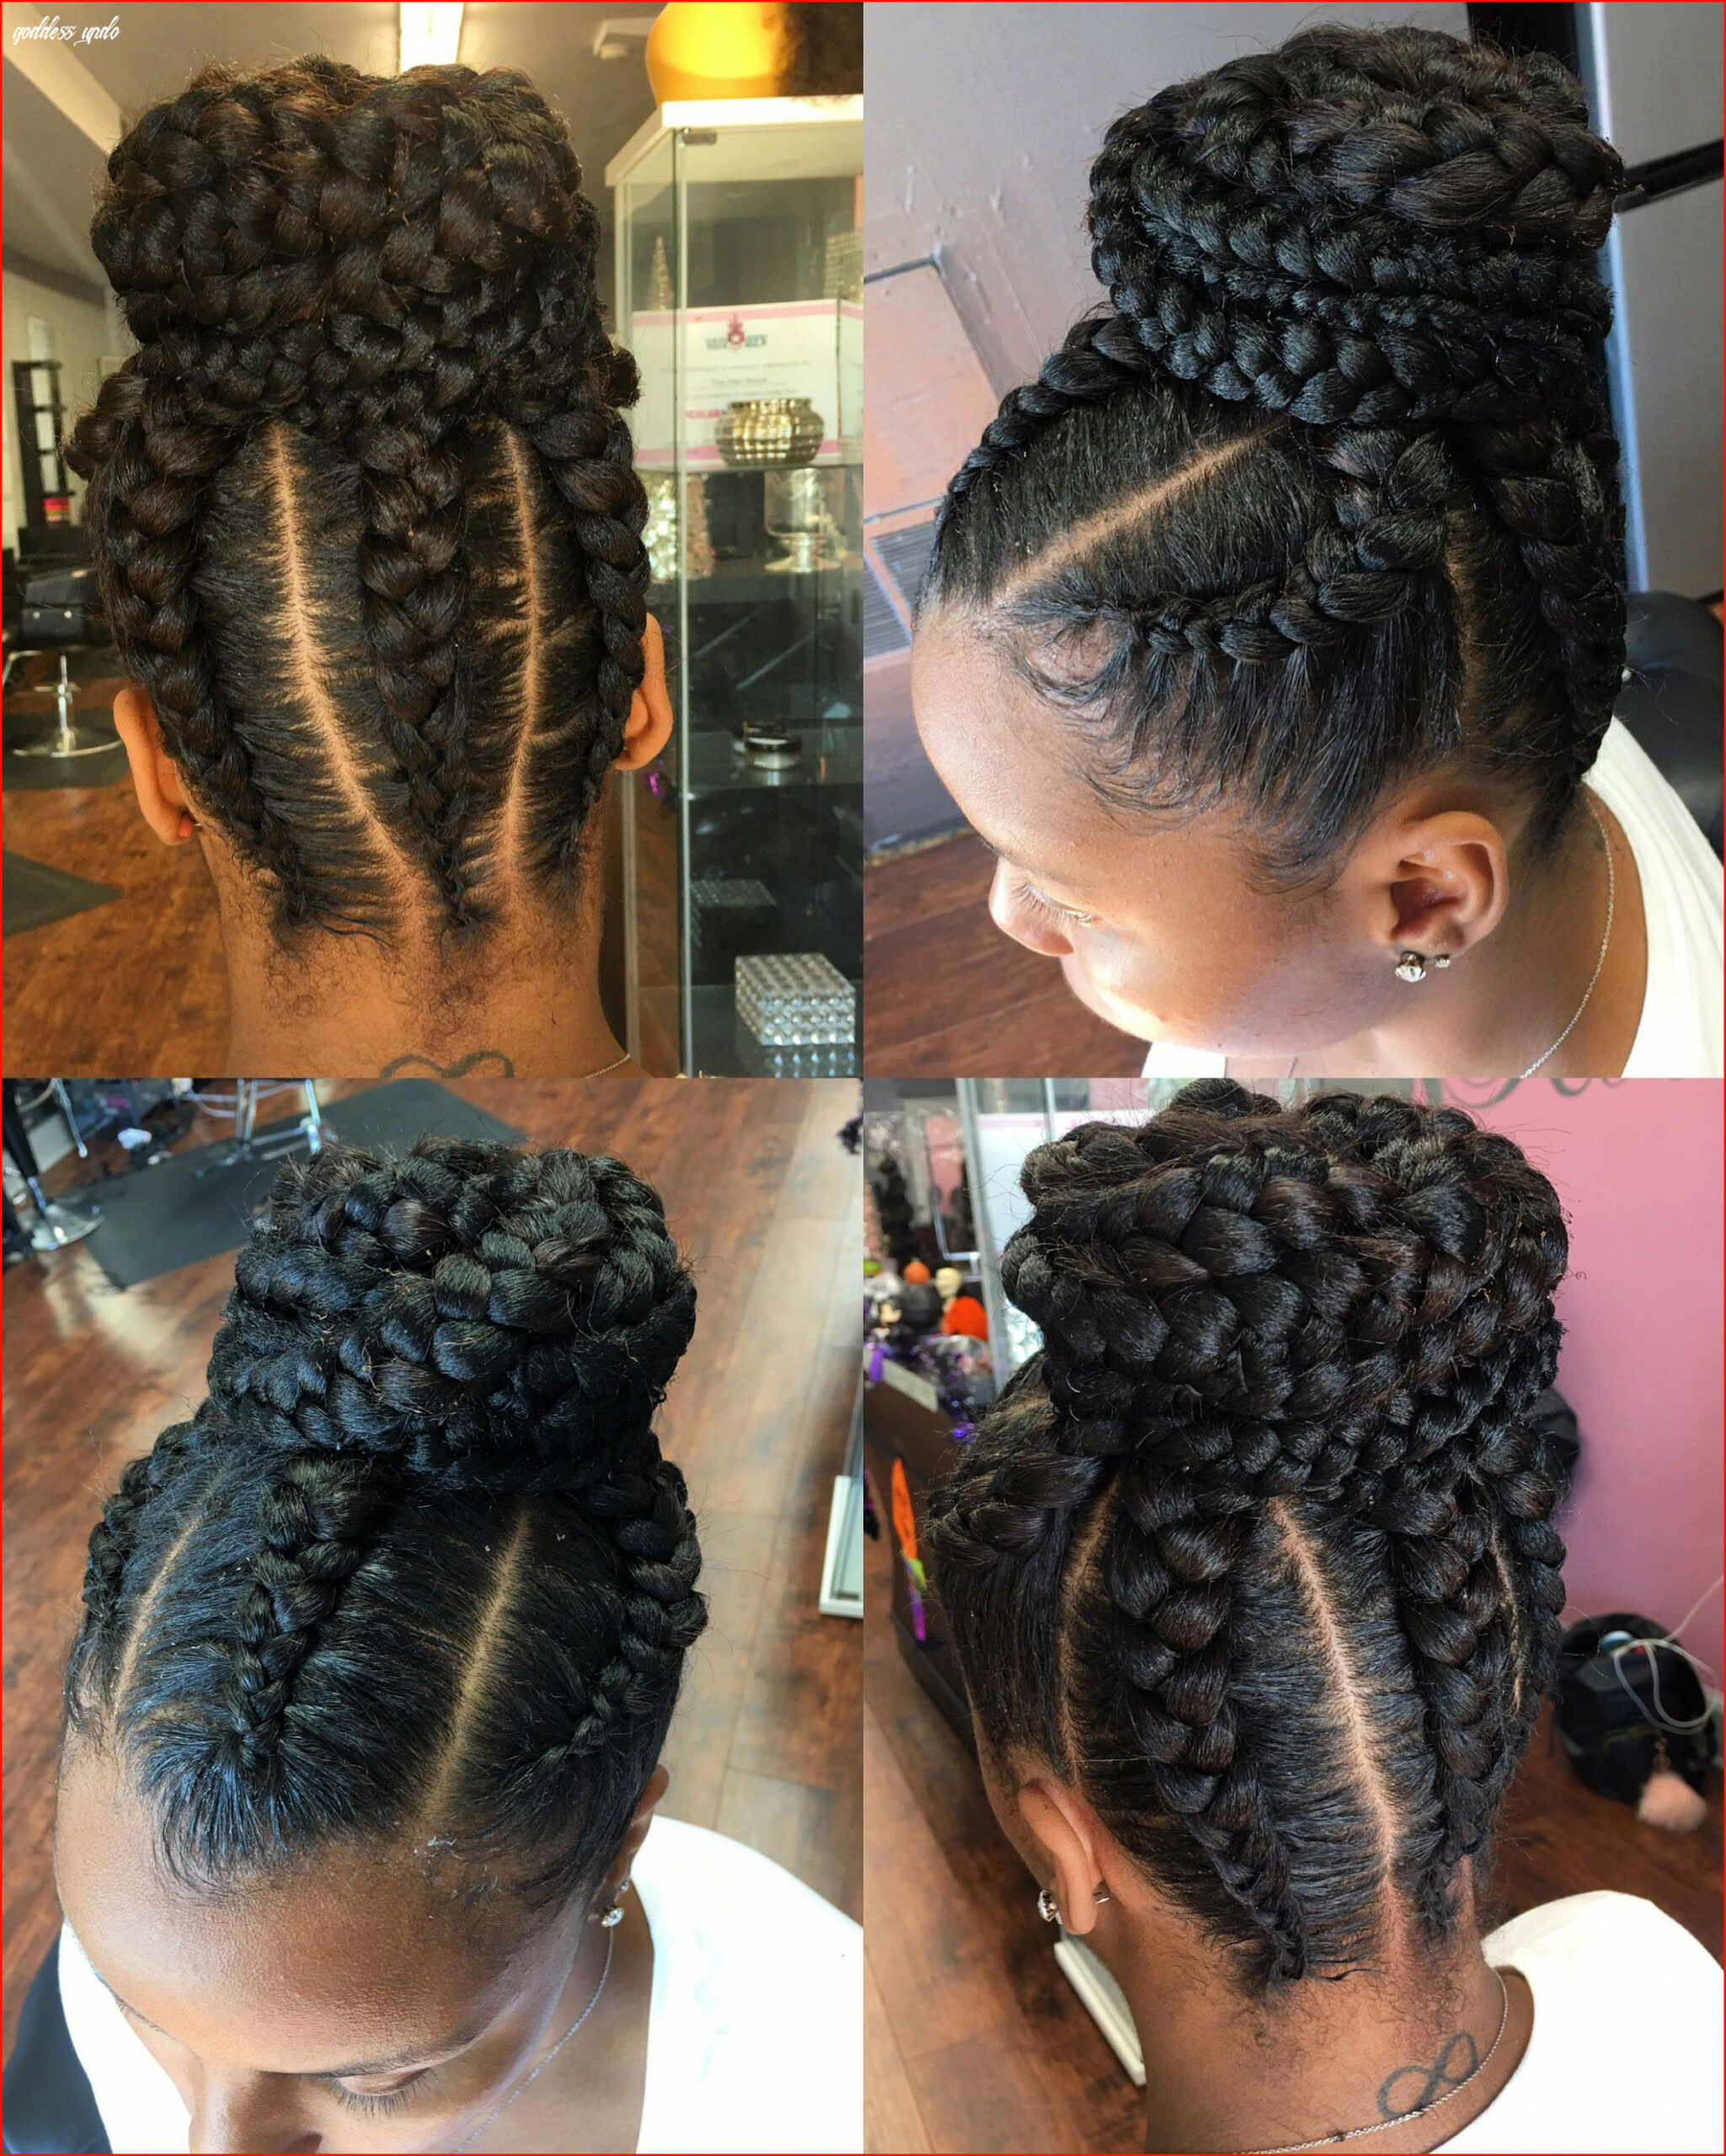 Amazing goddess updo hairstyles gallery of updos hairstyles style